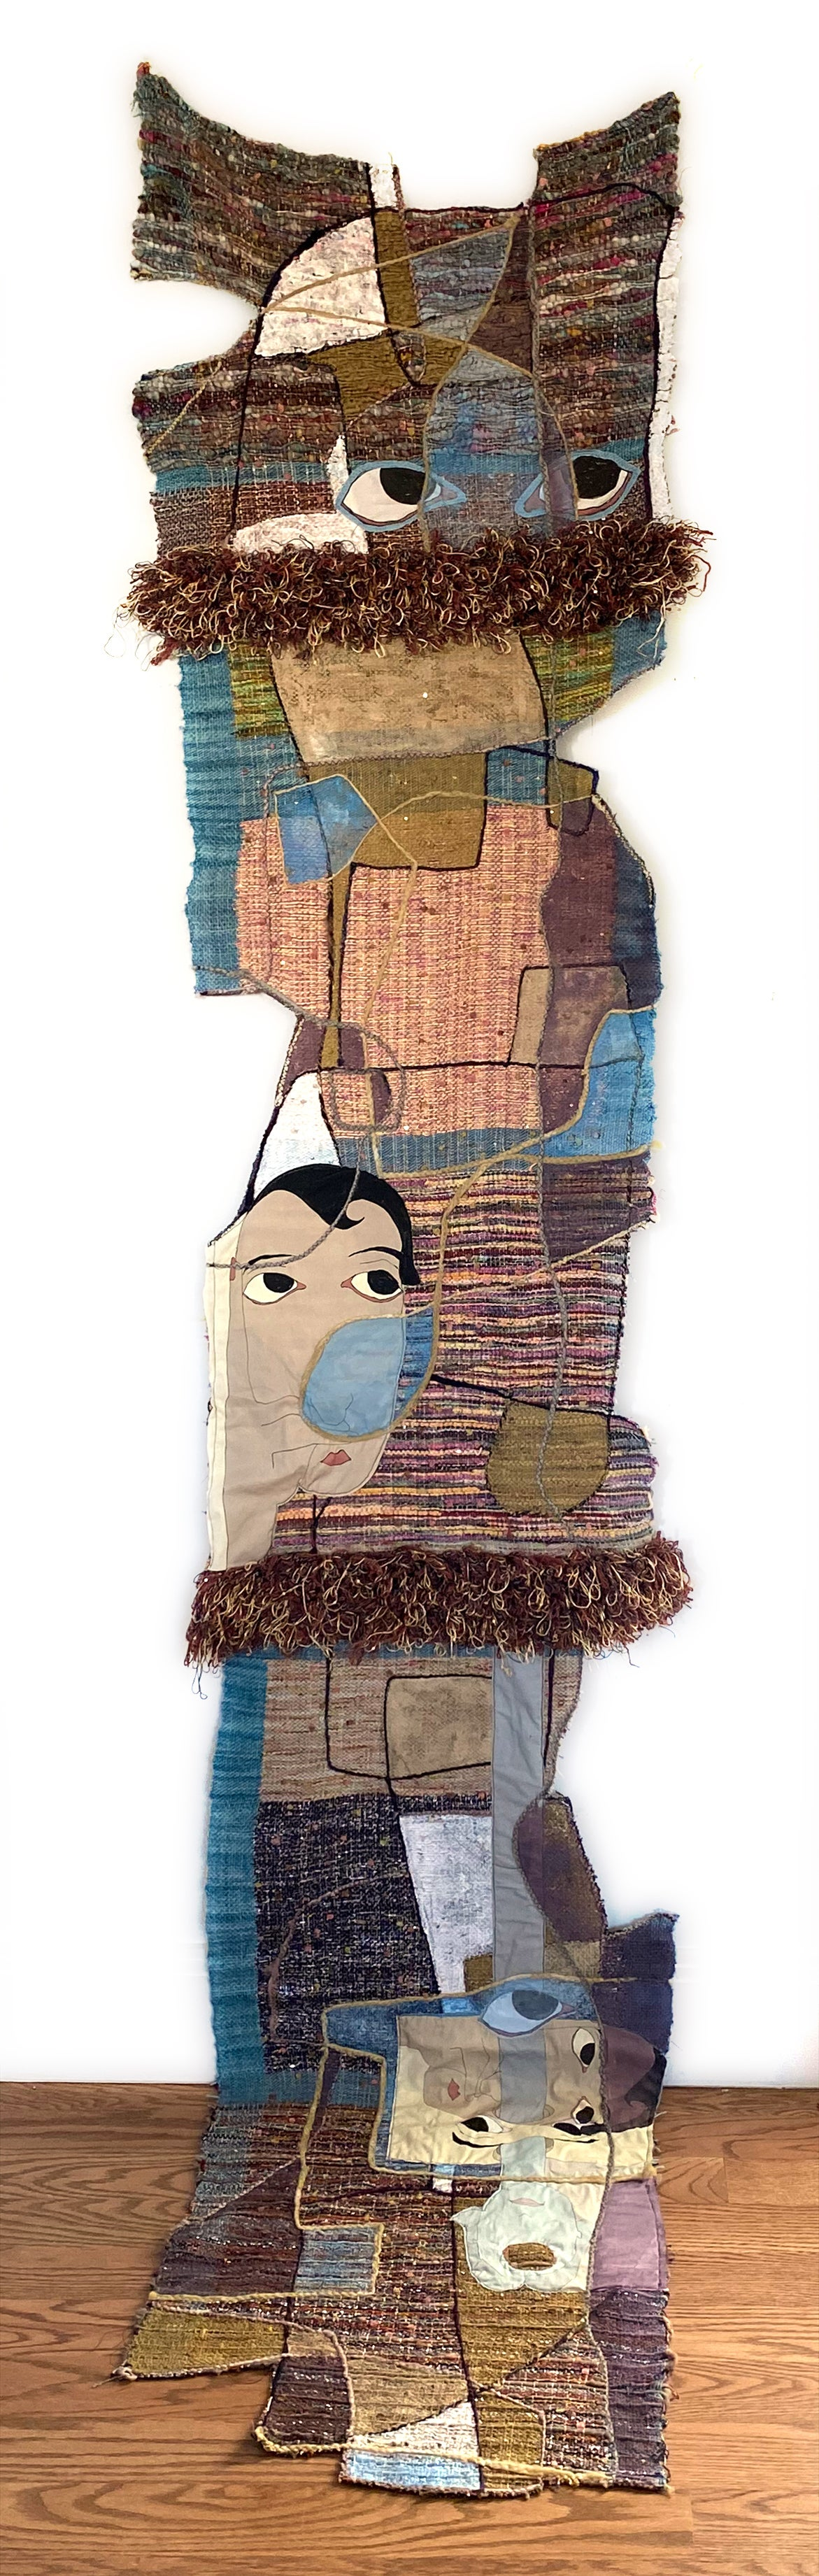 Handwoven textile wall hanging: 'Annie'